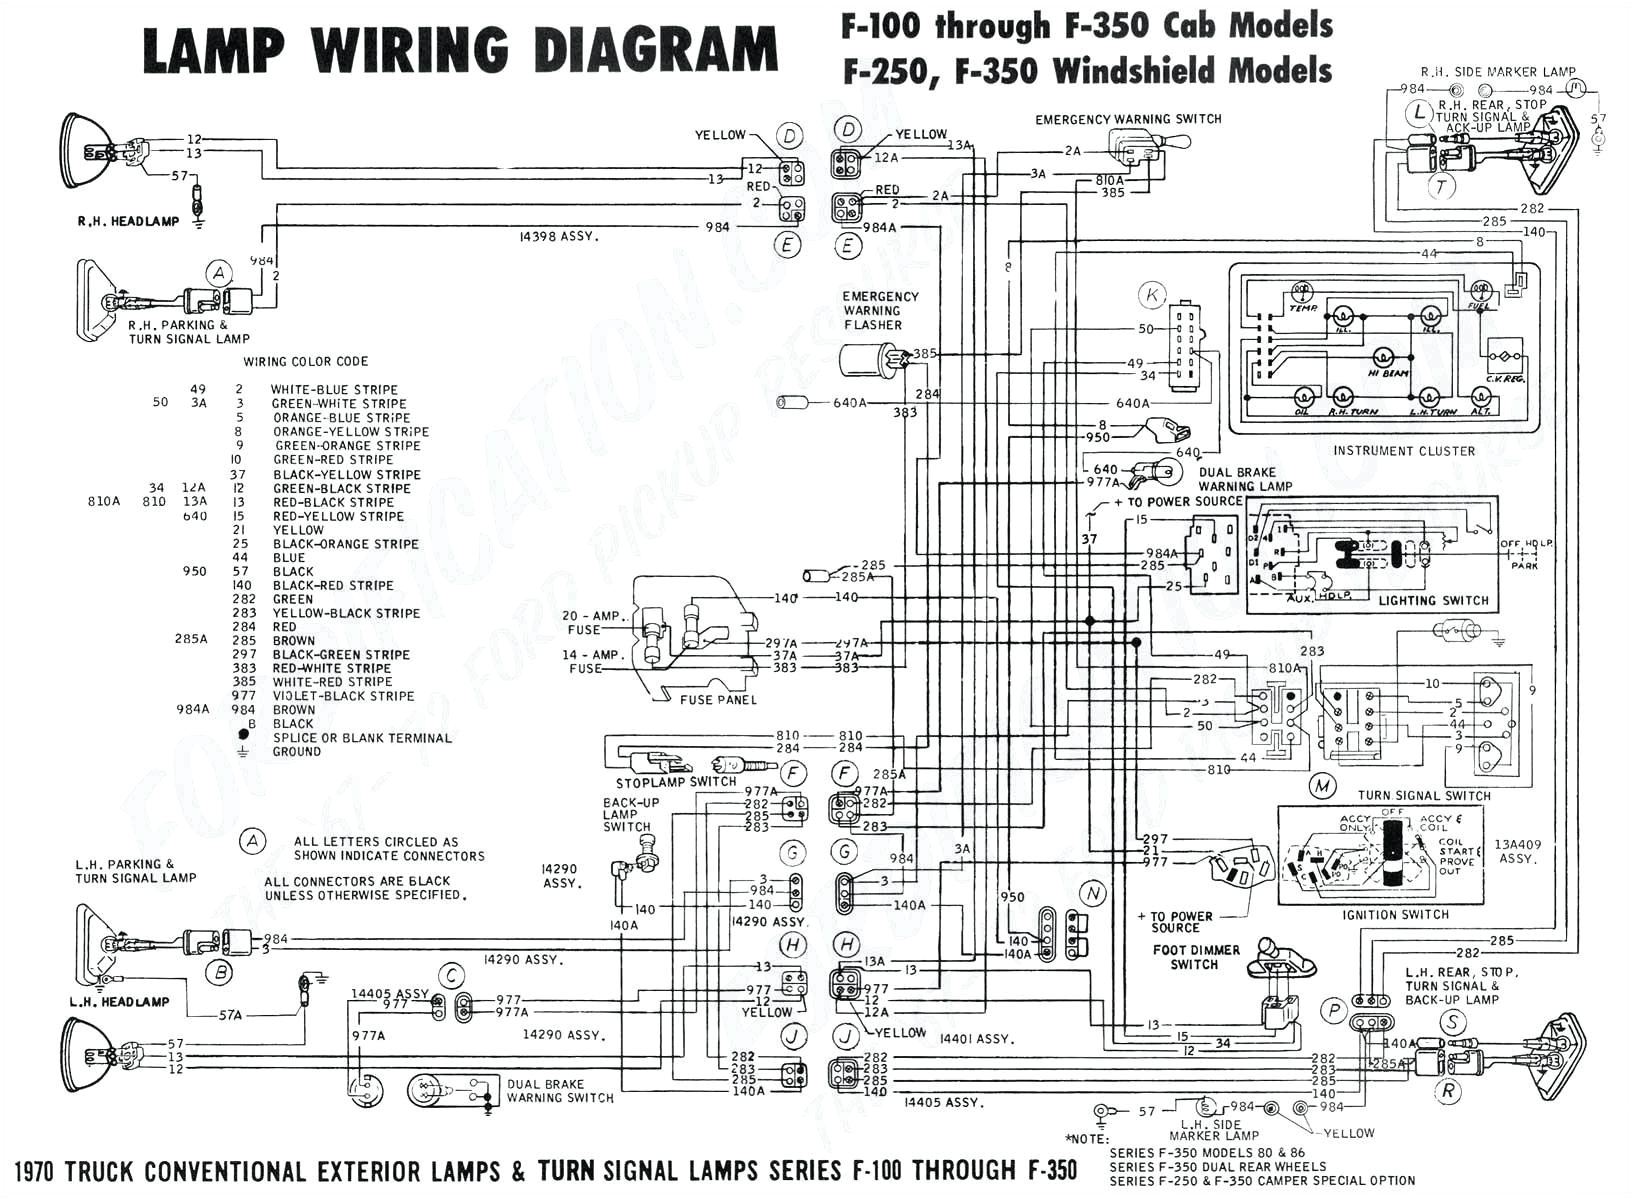 2000 ford Focus Wiring Diagram 2000 ford Focus Wiring Schematic Wiring Diagram toolbox